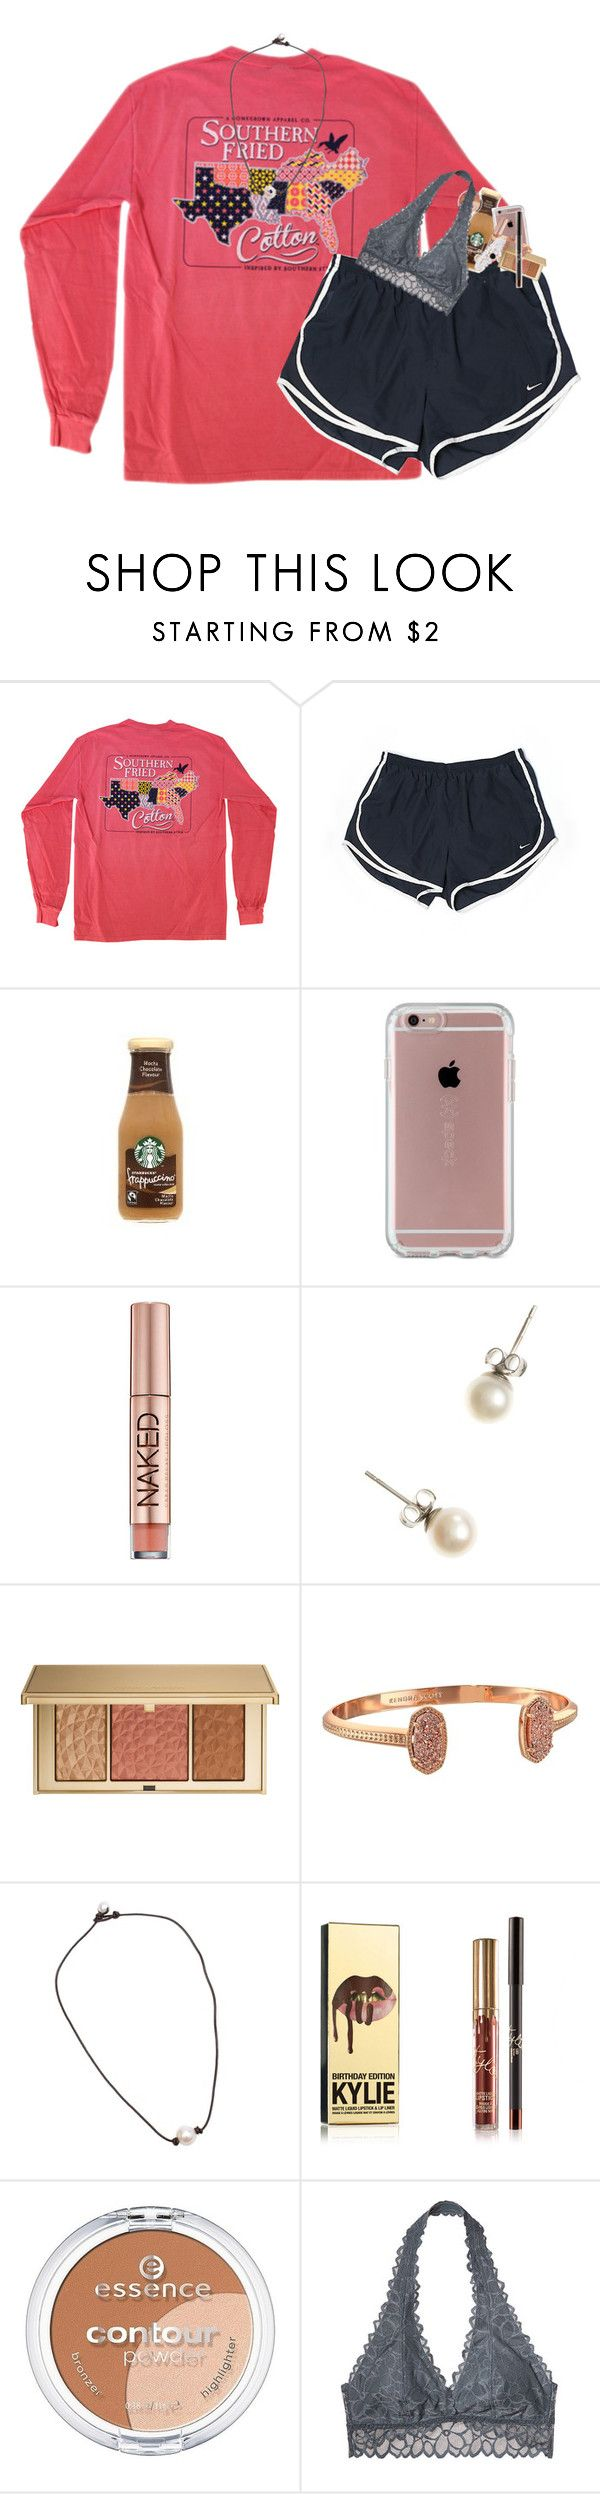 """i don't have school tomorrow bc teacher meetings"" by classynsouthern ❤ liked on Polyvore featuring NIKE, Speck, Urban Decay, J.Crew, Estée Lauder, Kendra Scott, Essence and Victoria's Secret"